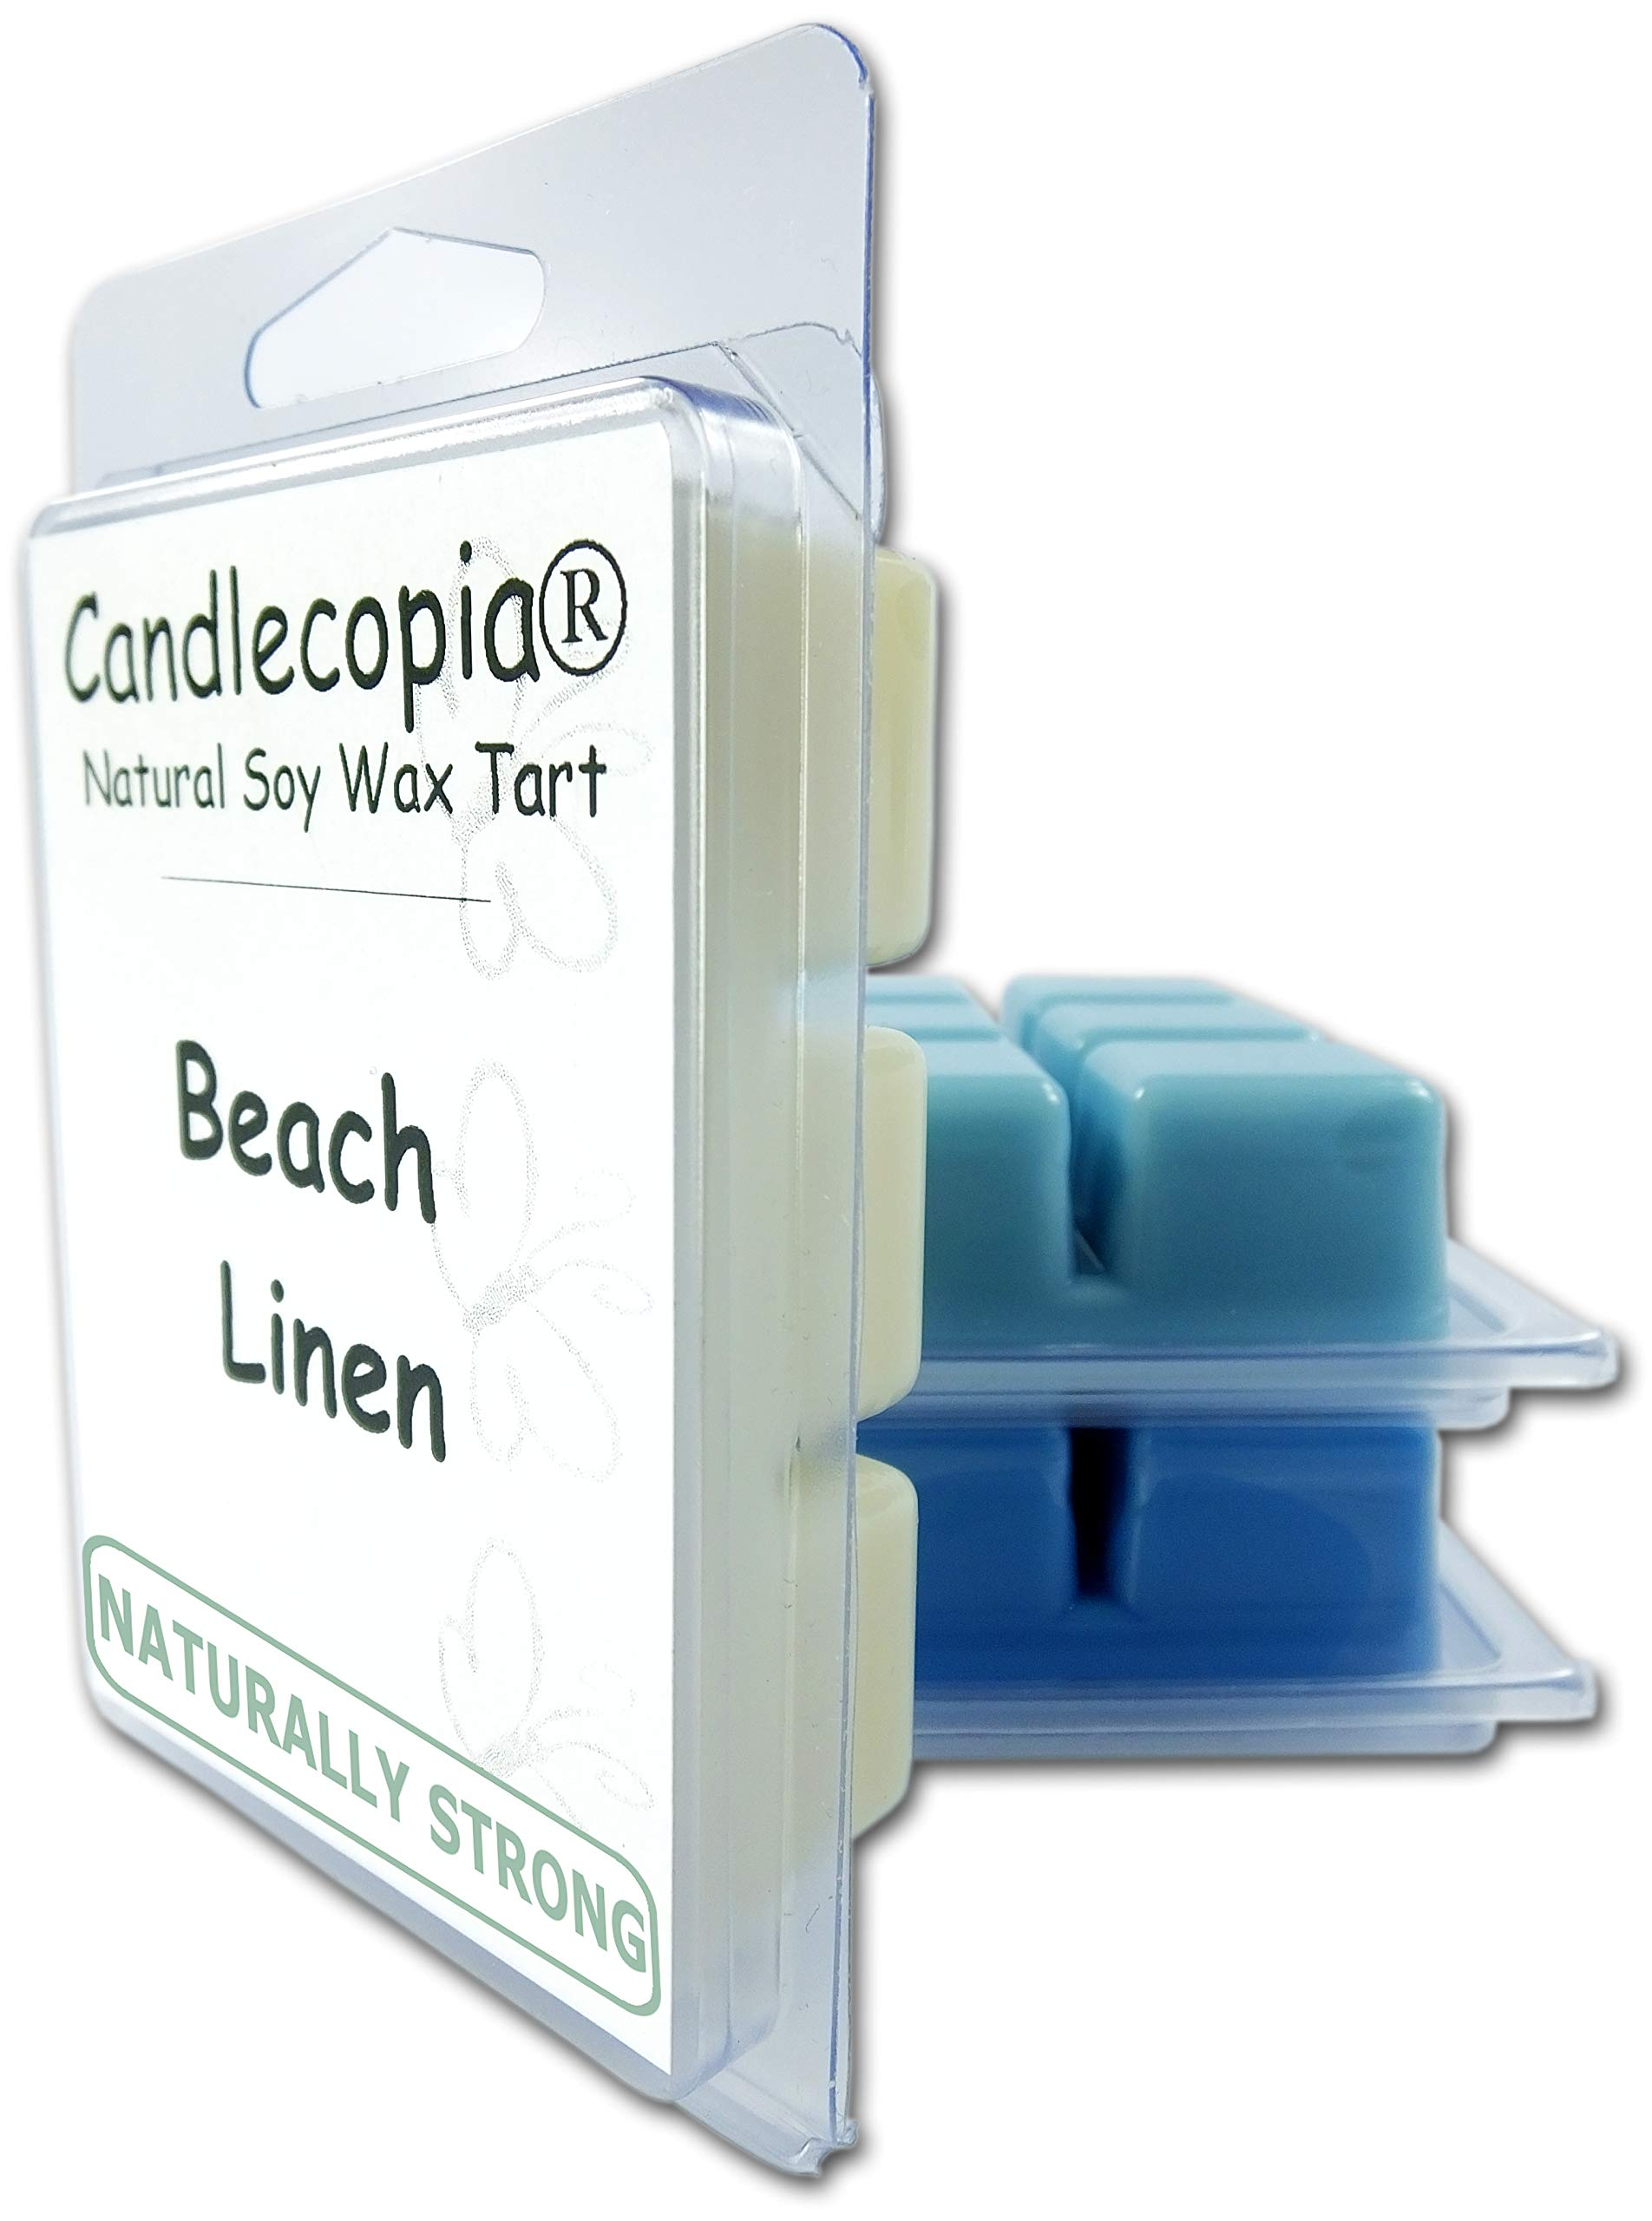 Candlecopia Rain Water, Sea Mist and Beach Linen Strongly Scented Hand Poured Vegan Wax Melts, 18 Scented Wax Cubes, 9.6 Ounces in 3 x 6-Packs